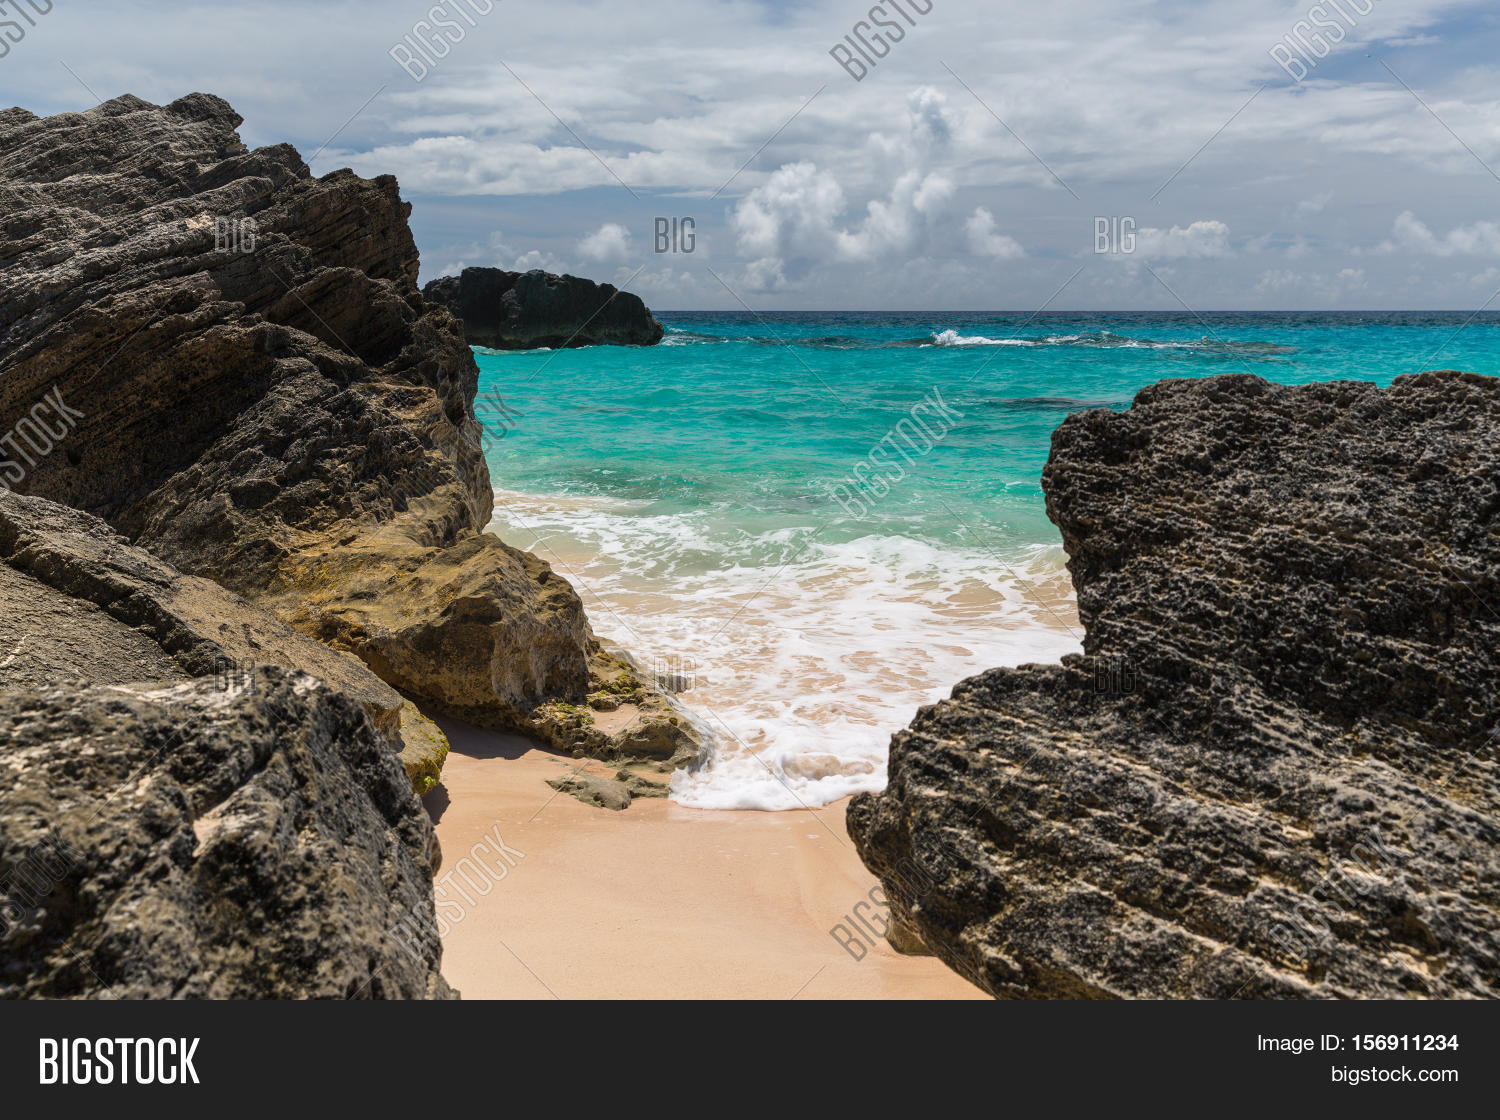 Horseshoe Bay Is Perhaps The Most Famous Beach In Bermuda Very Por Tourist Spot It